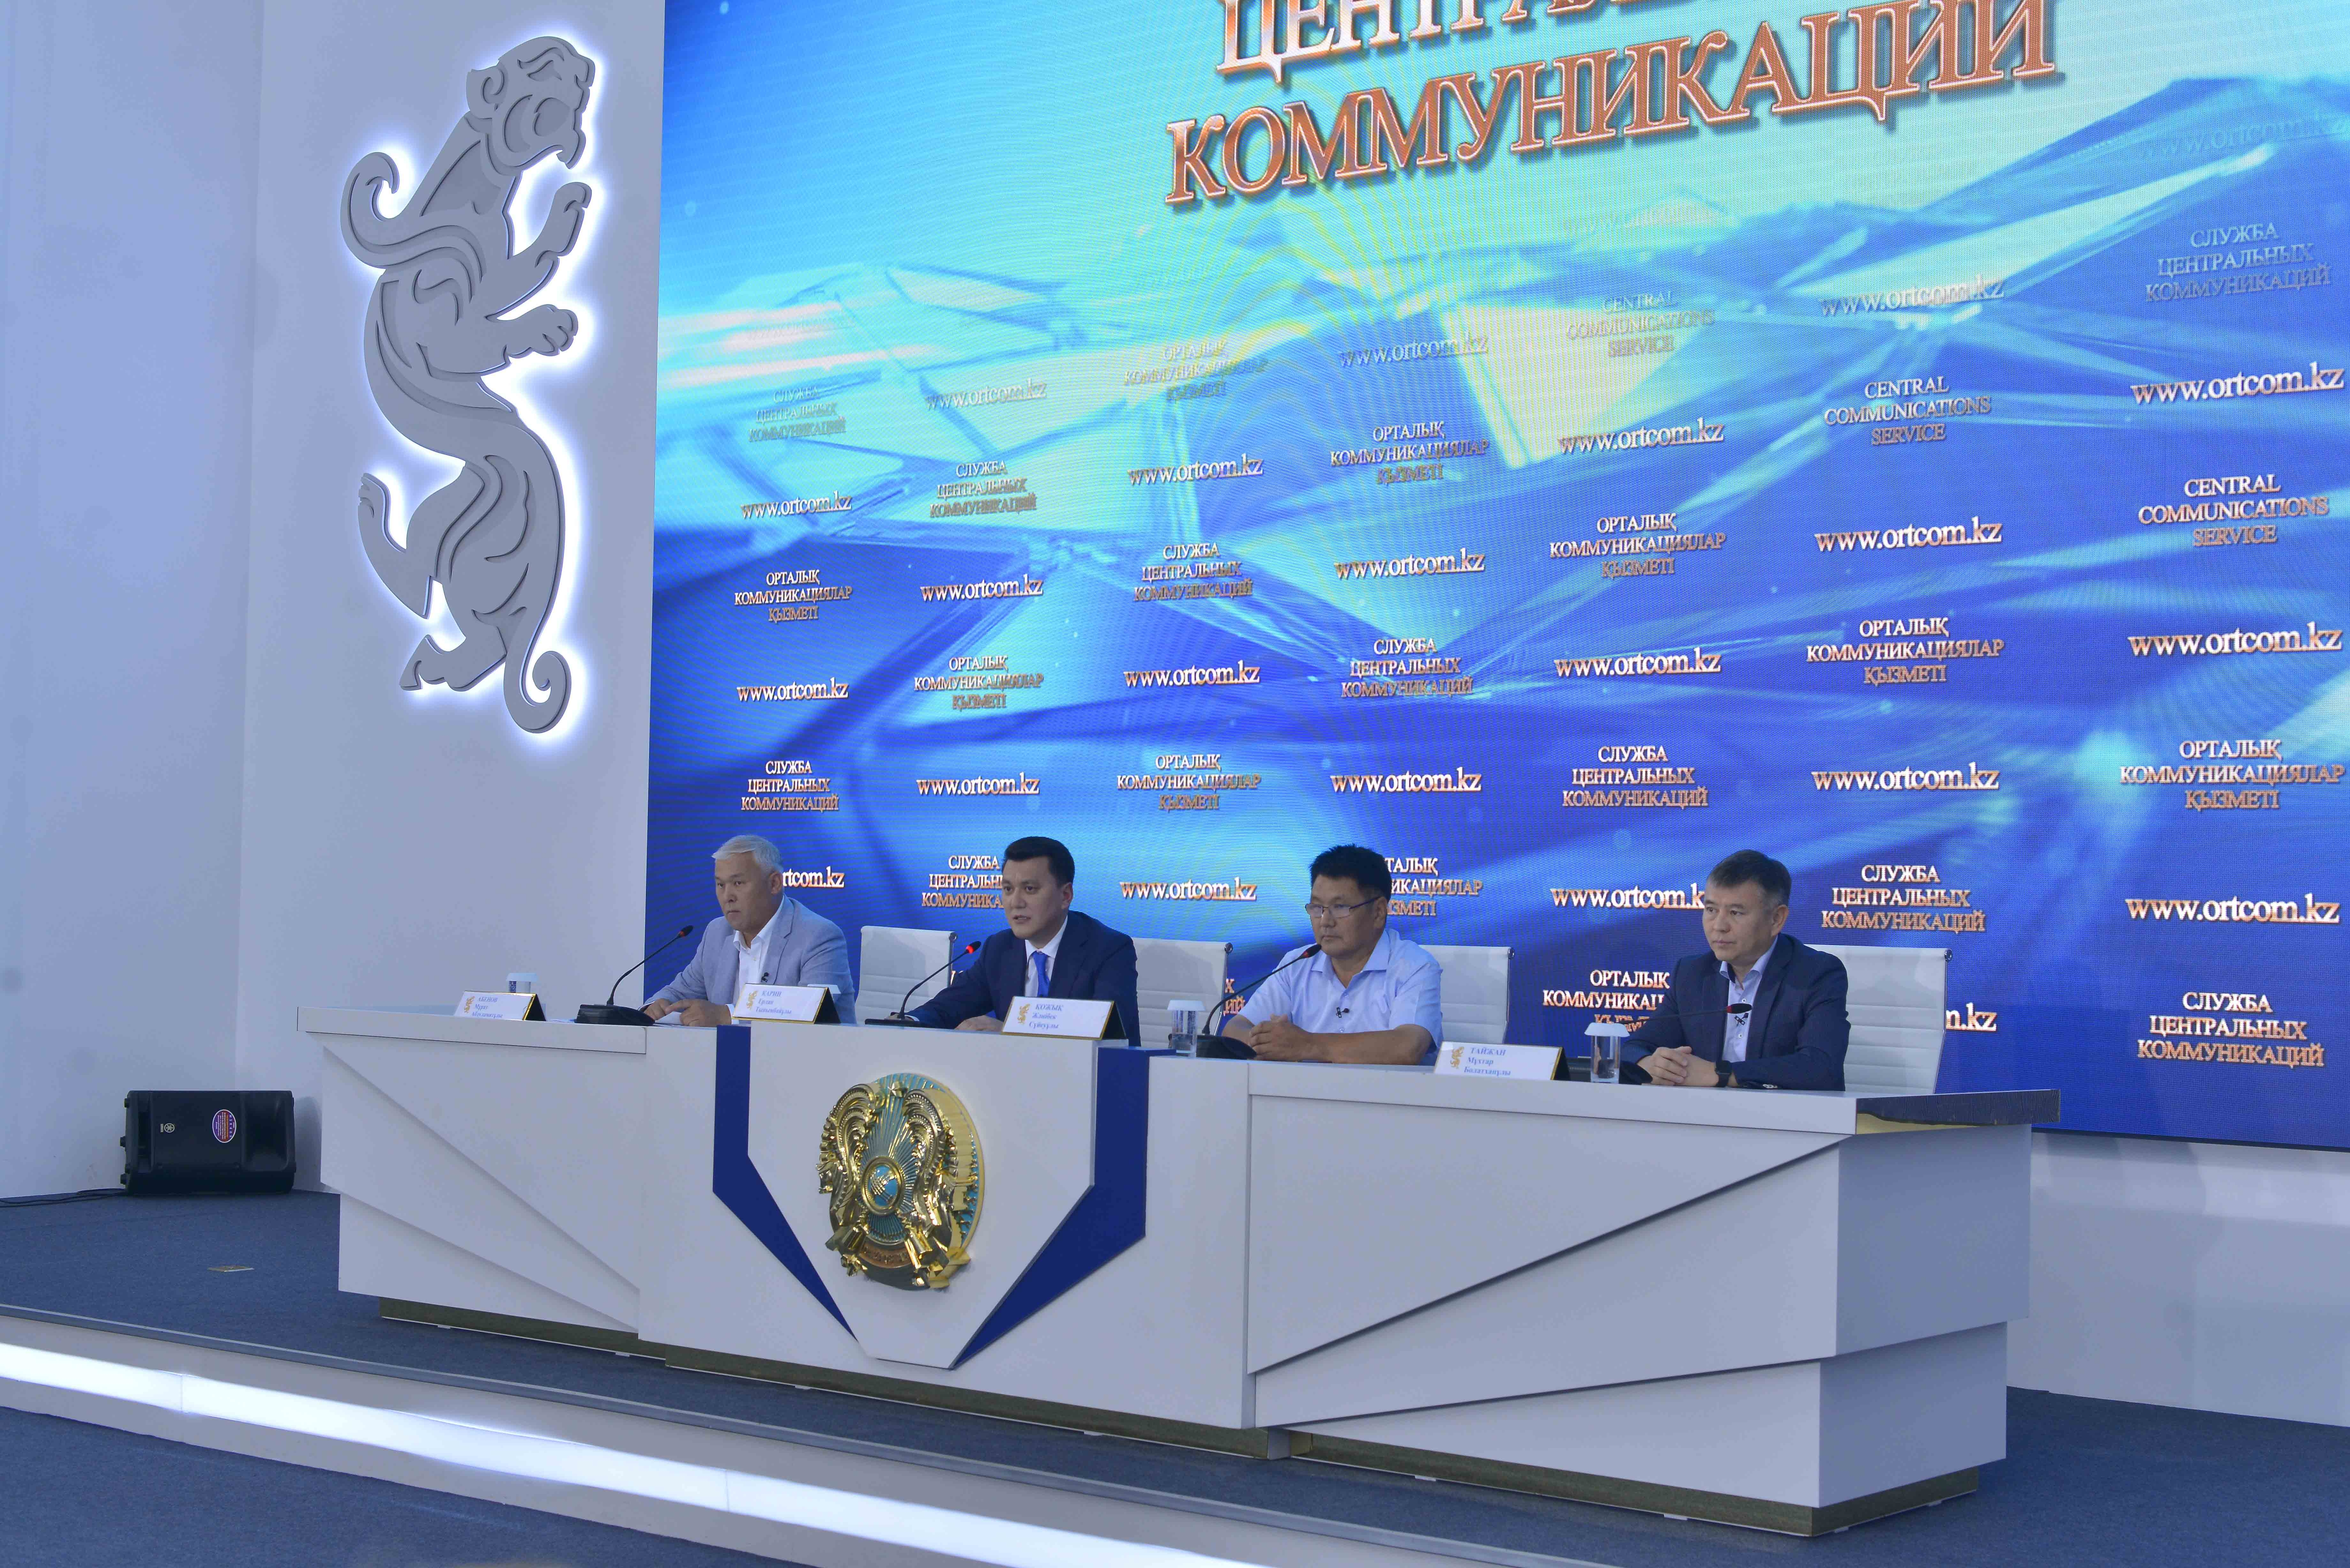 Karin, second from left, presenting the makeup of the National Council on Public Confidence on July 17. (Photo: Information Ministry)